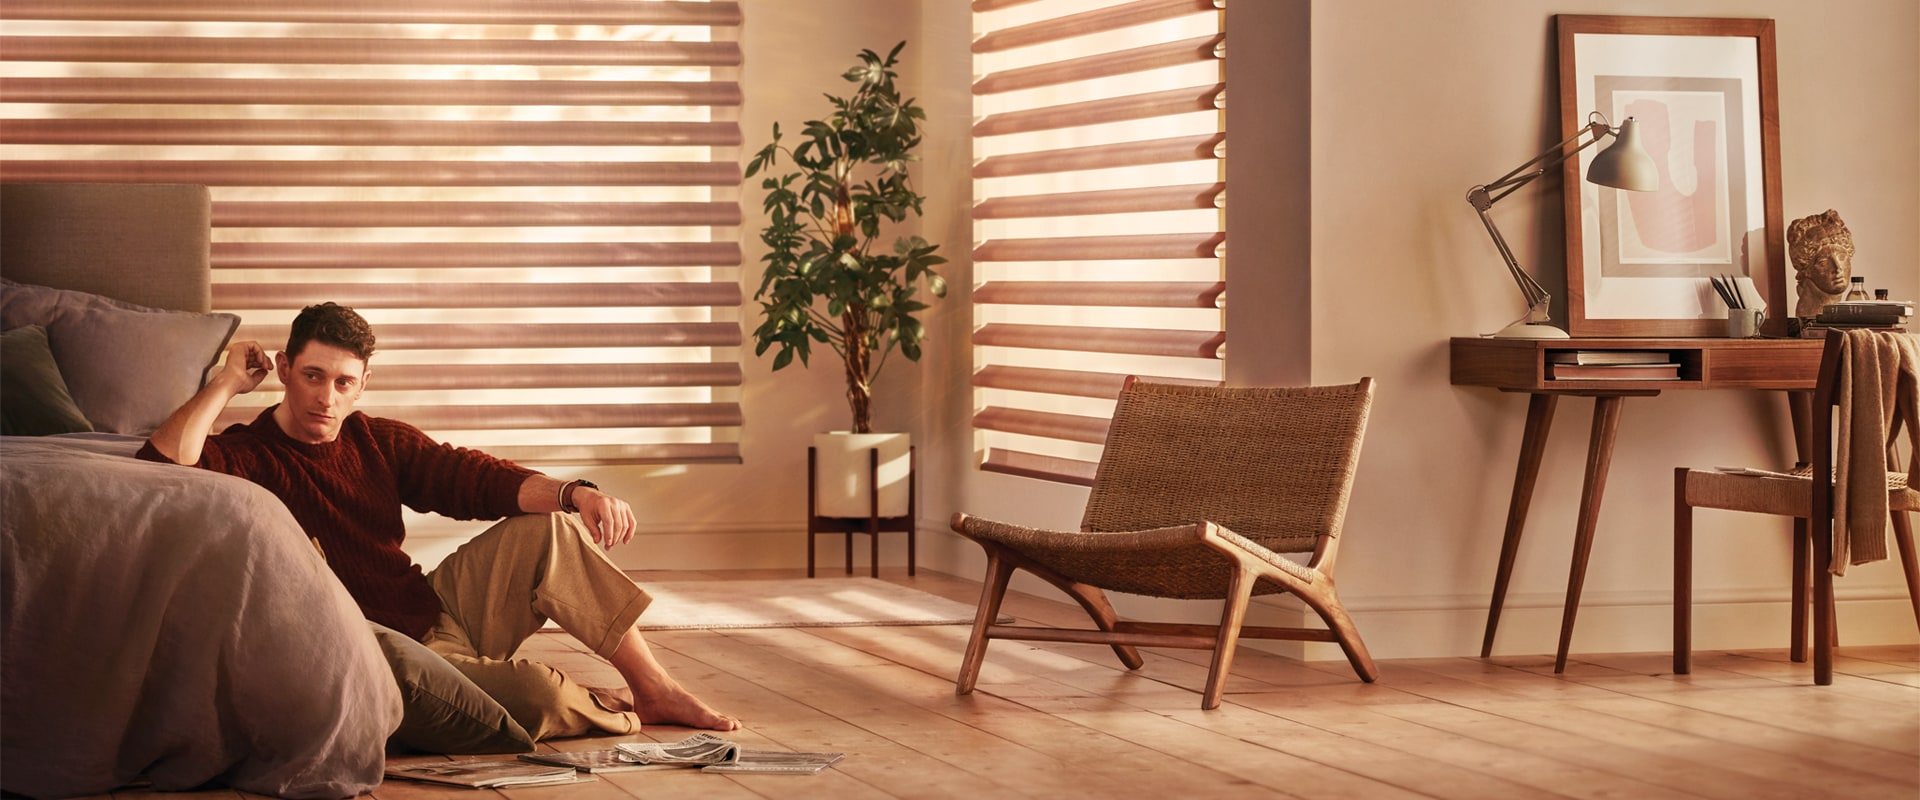 Man sitting on bedroom floor next to Pirouette Window Shadings